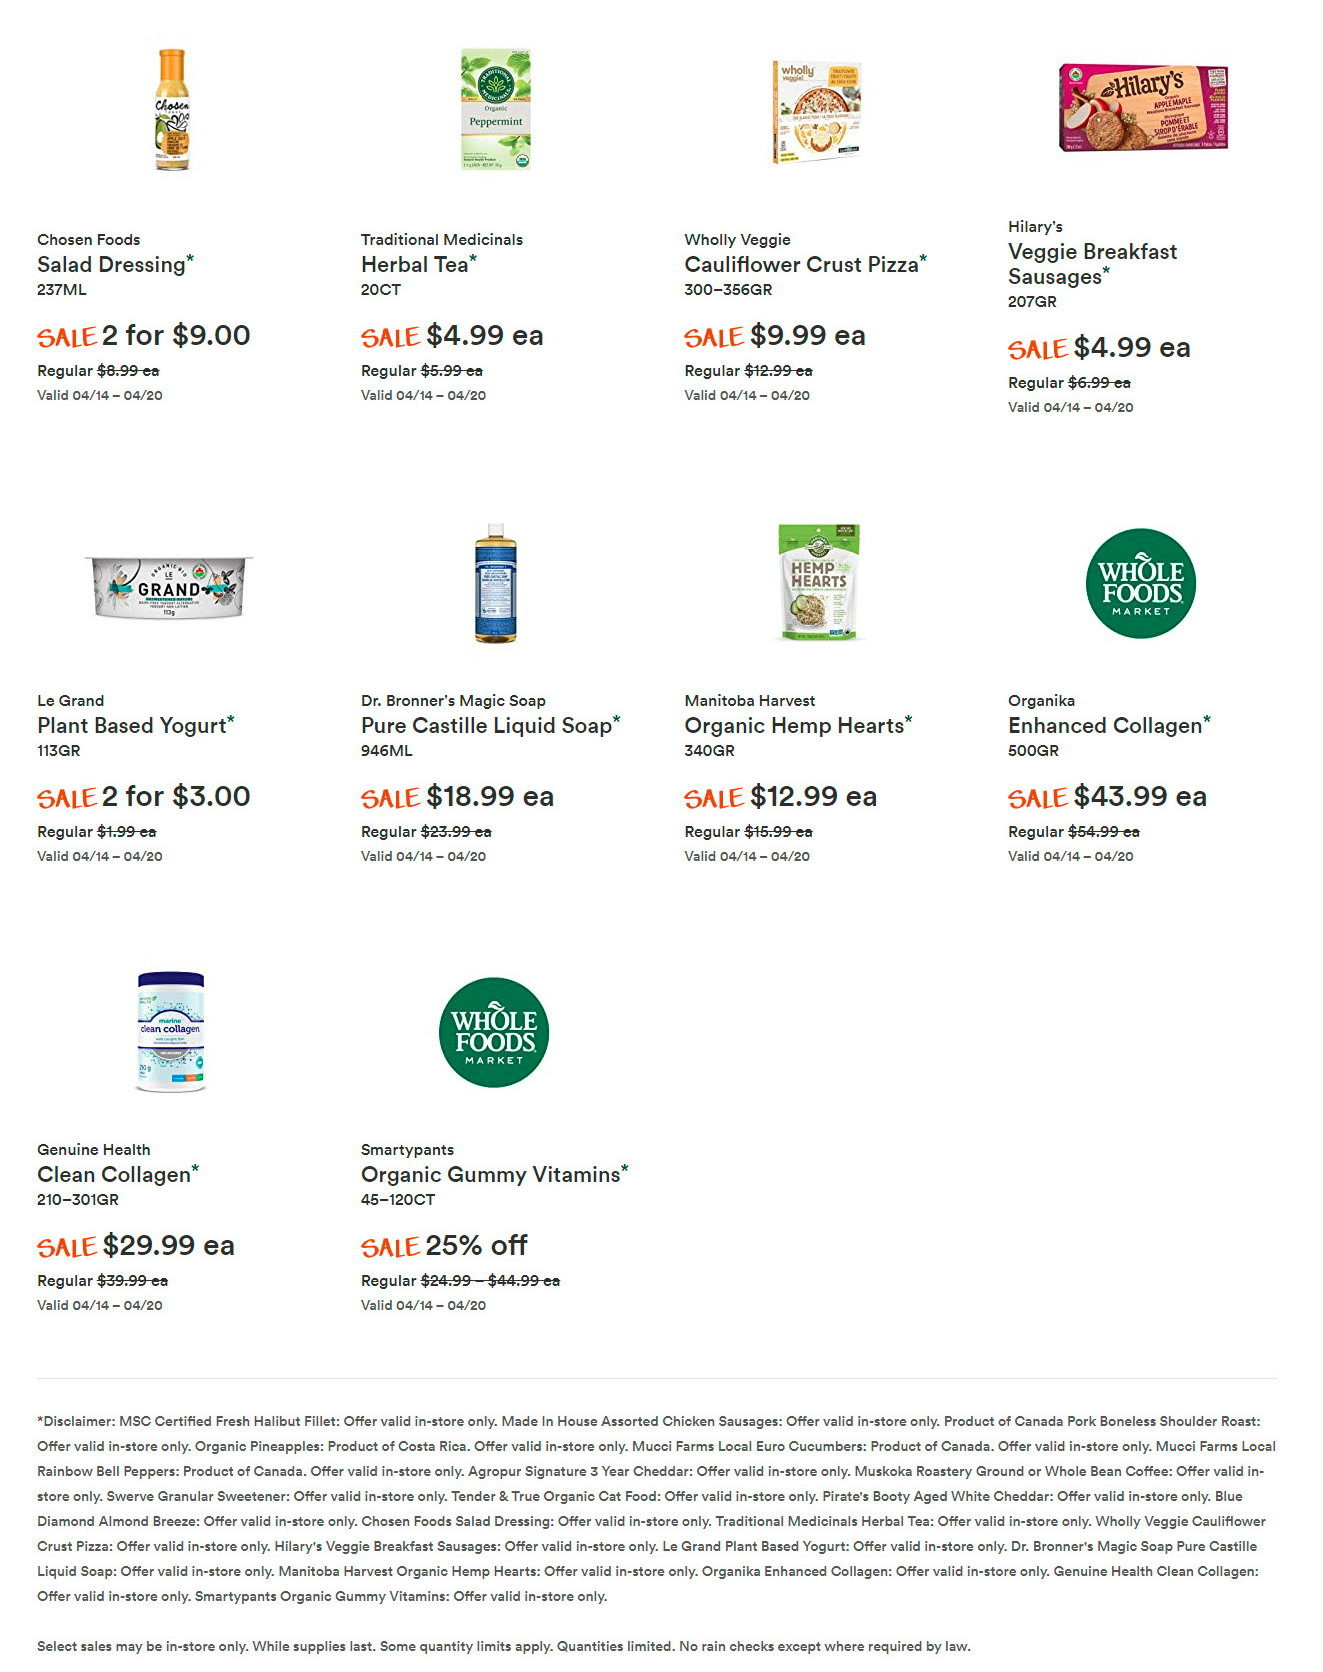 Whole Foods Market - Weekly Flyer Specials - Page 2